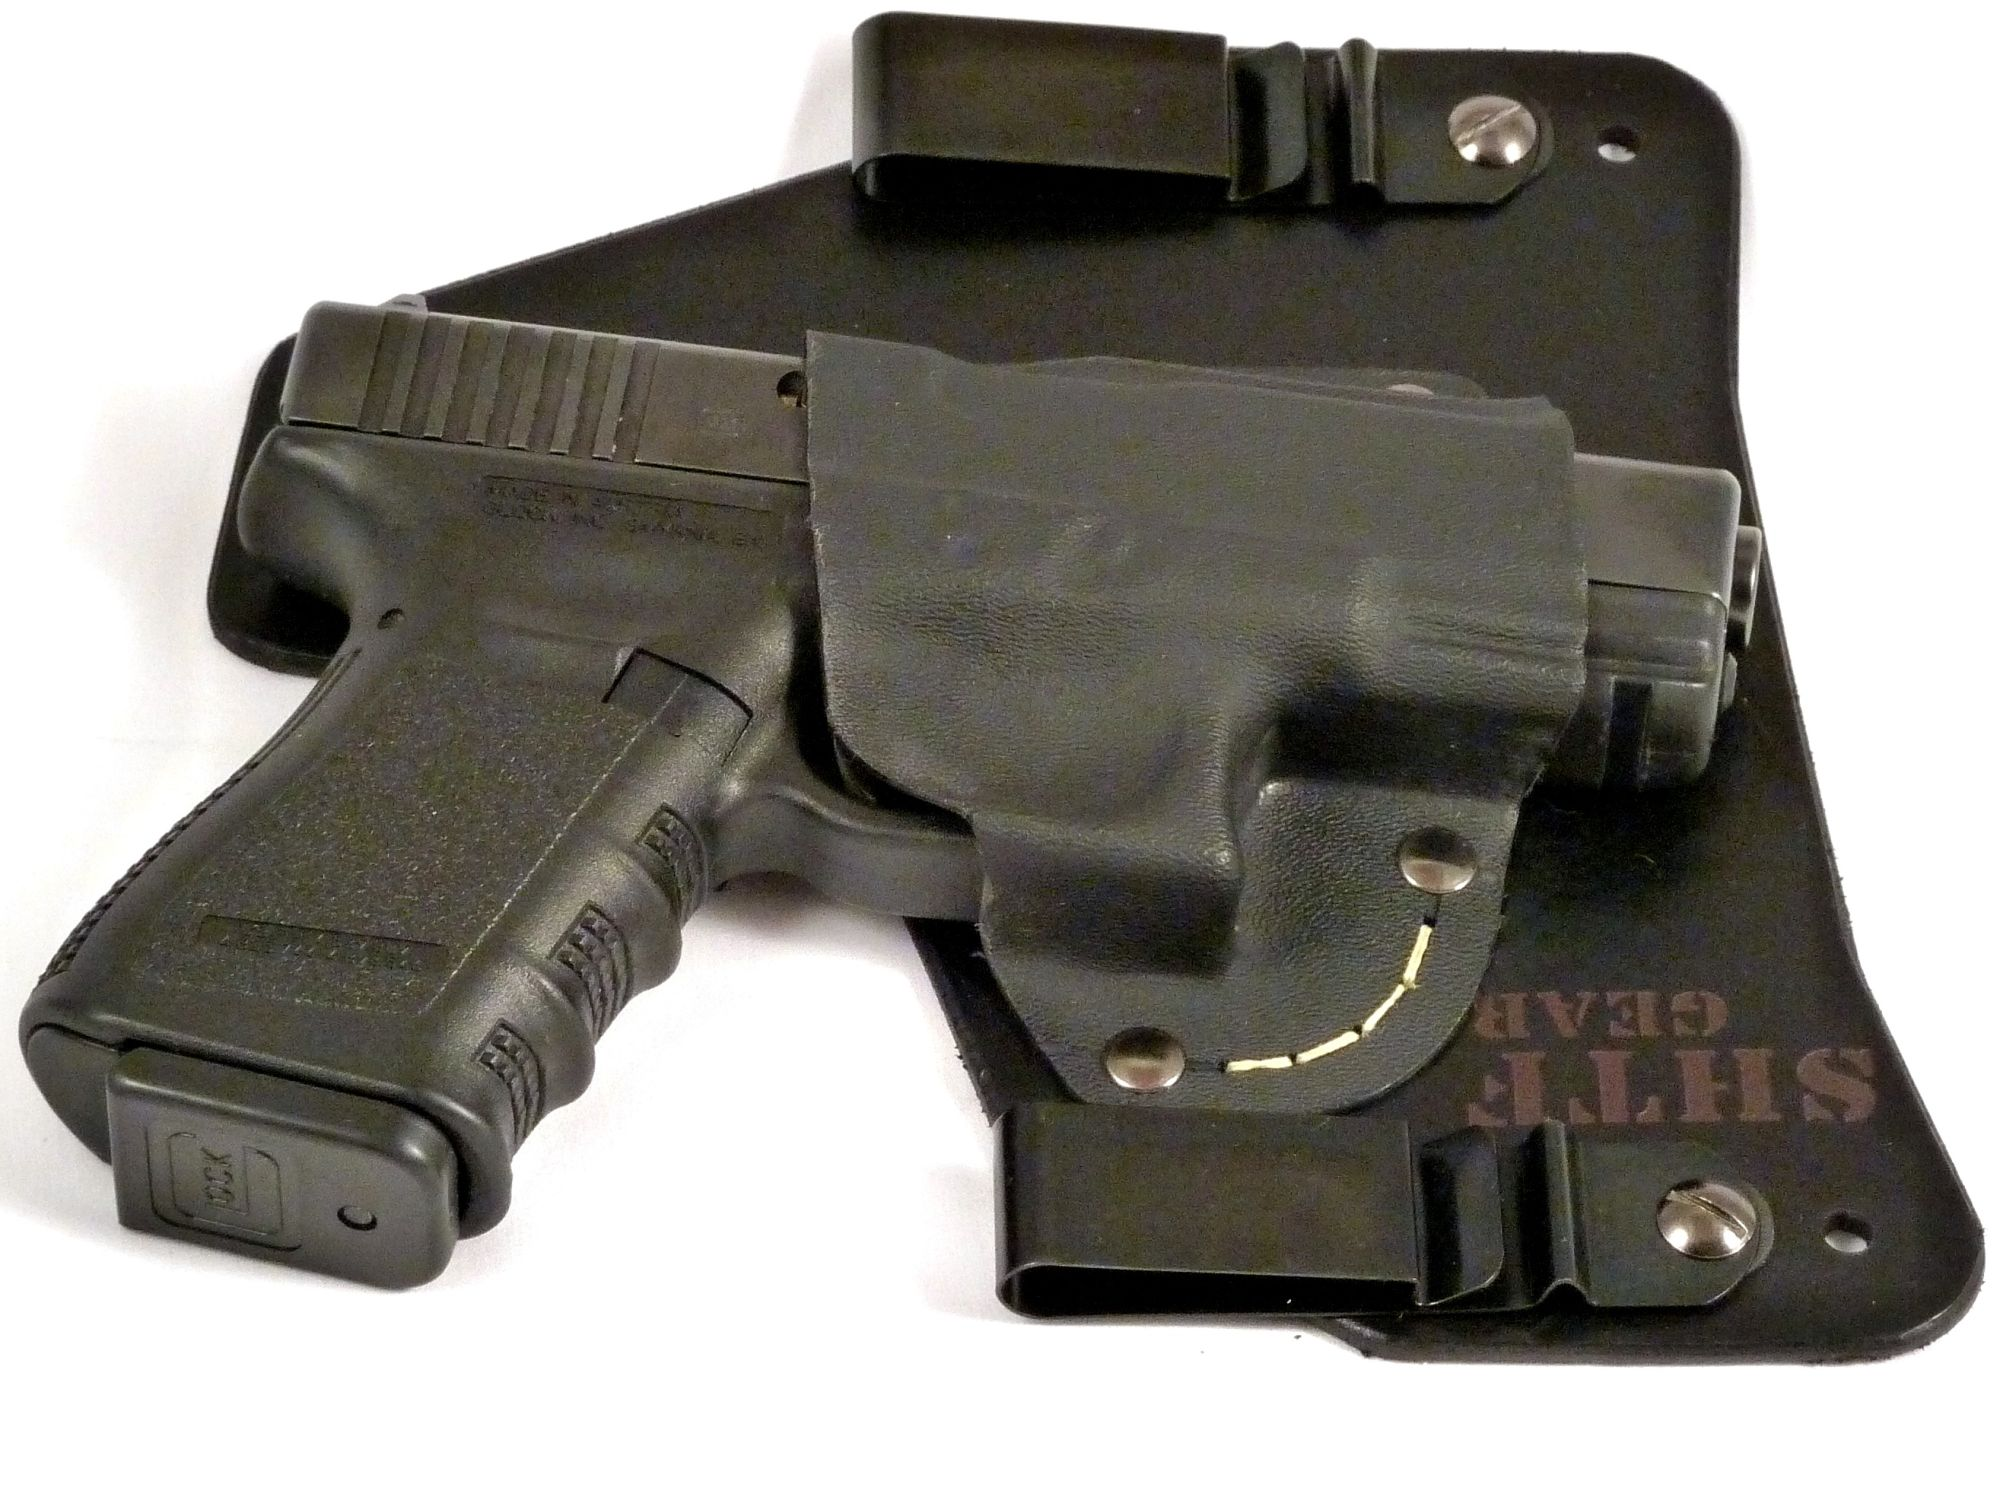 What's your favorite IWB CC holster?-glock-gun-left-2000.jpg